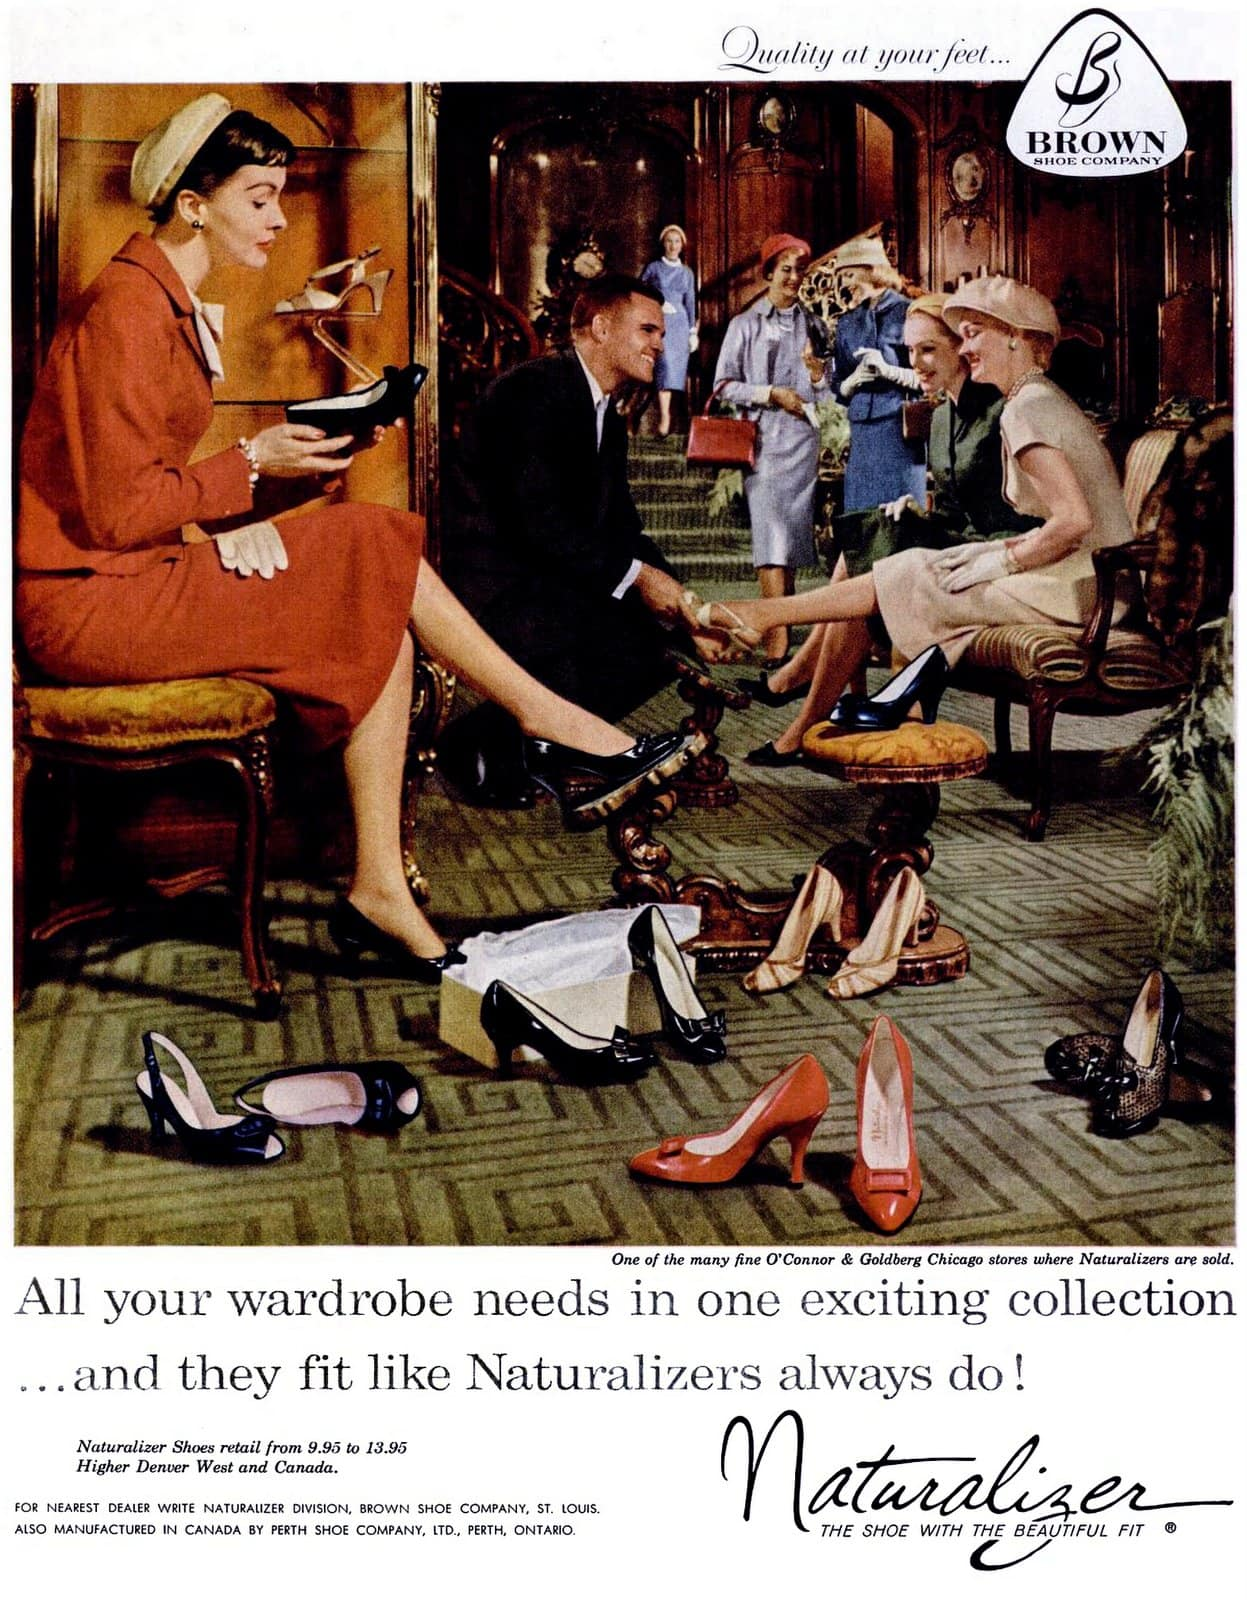 Shopping for women's shoes in 1958 - Naturalizer